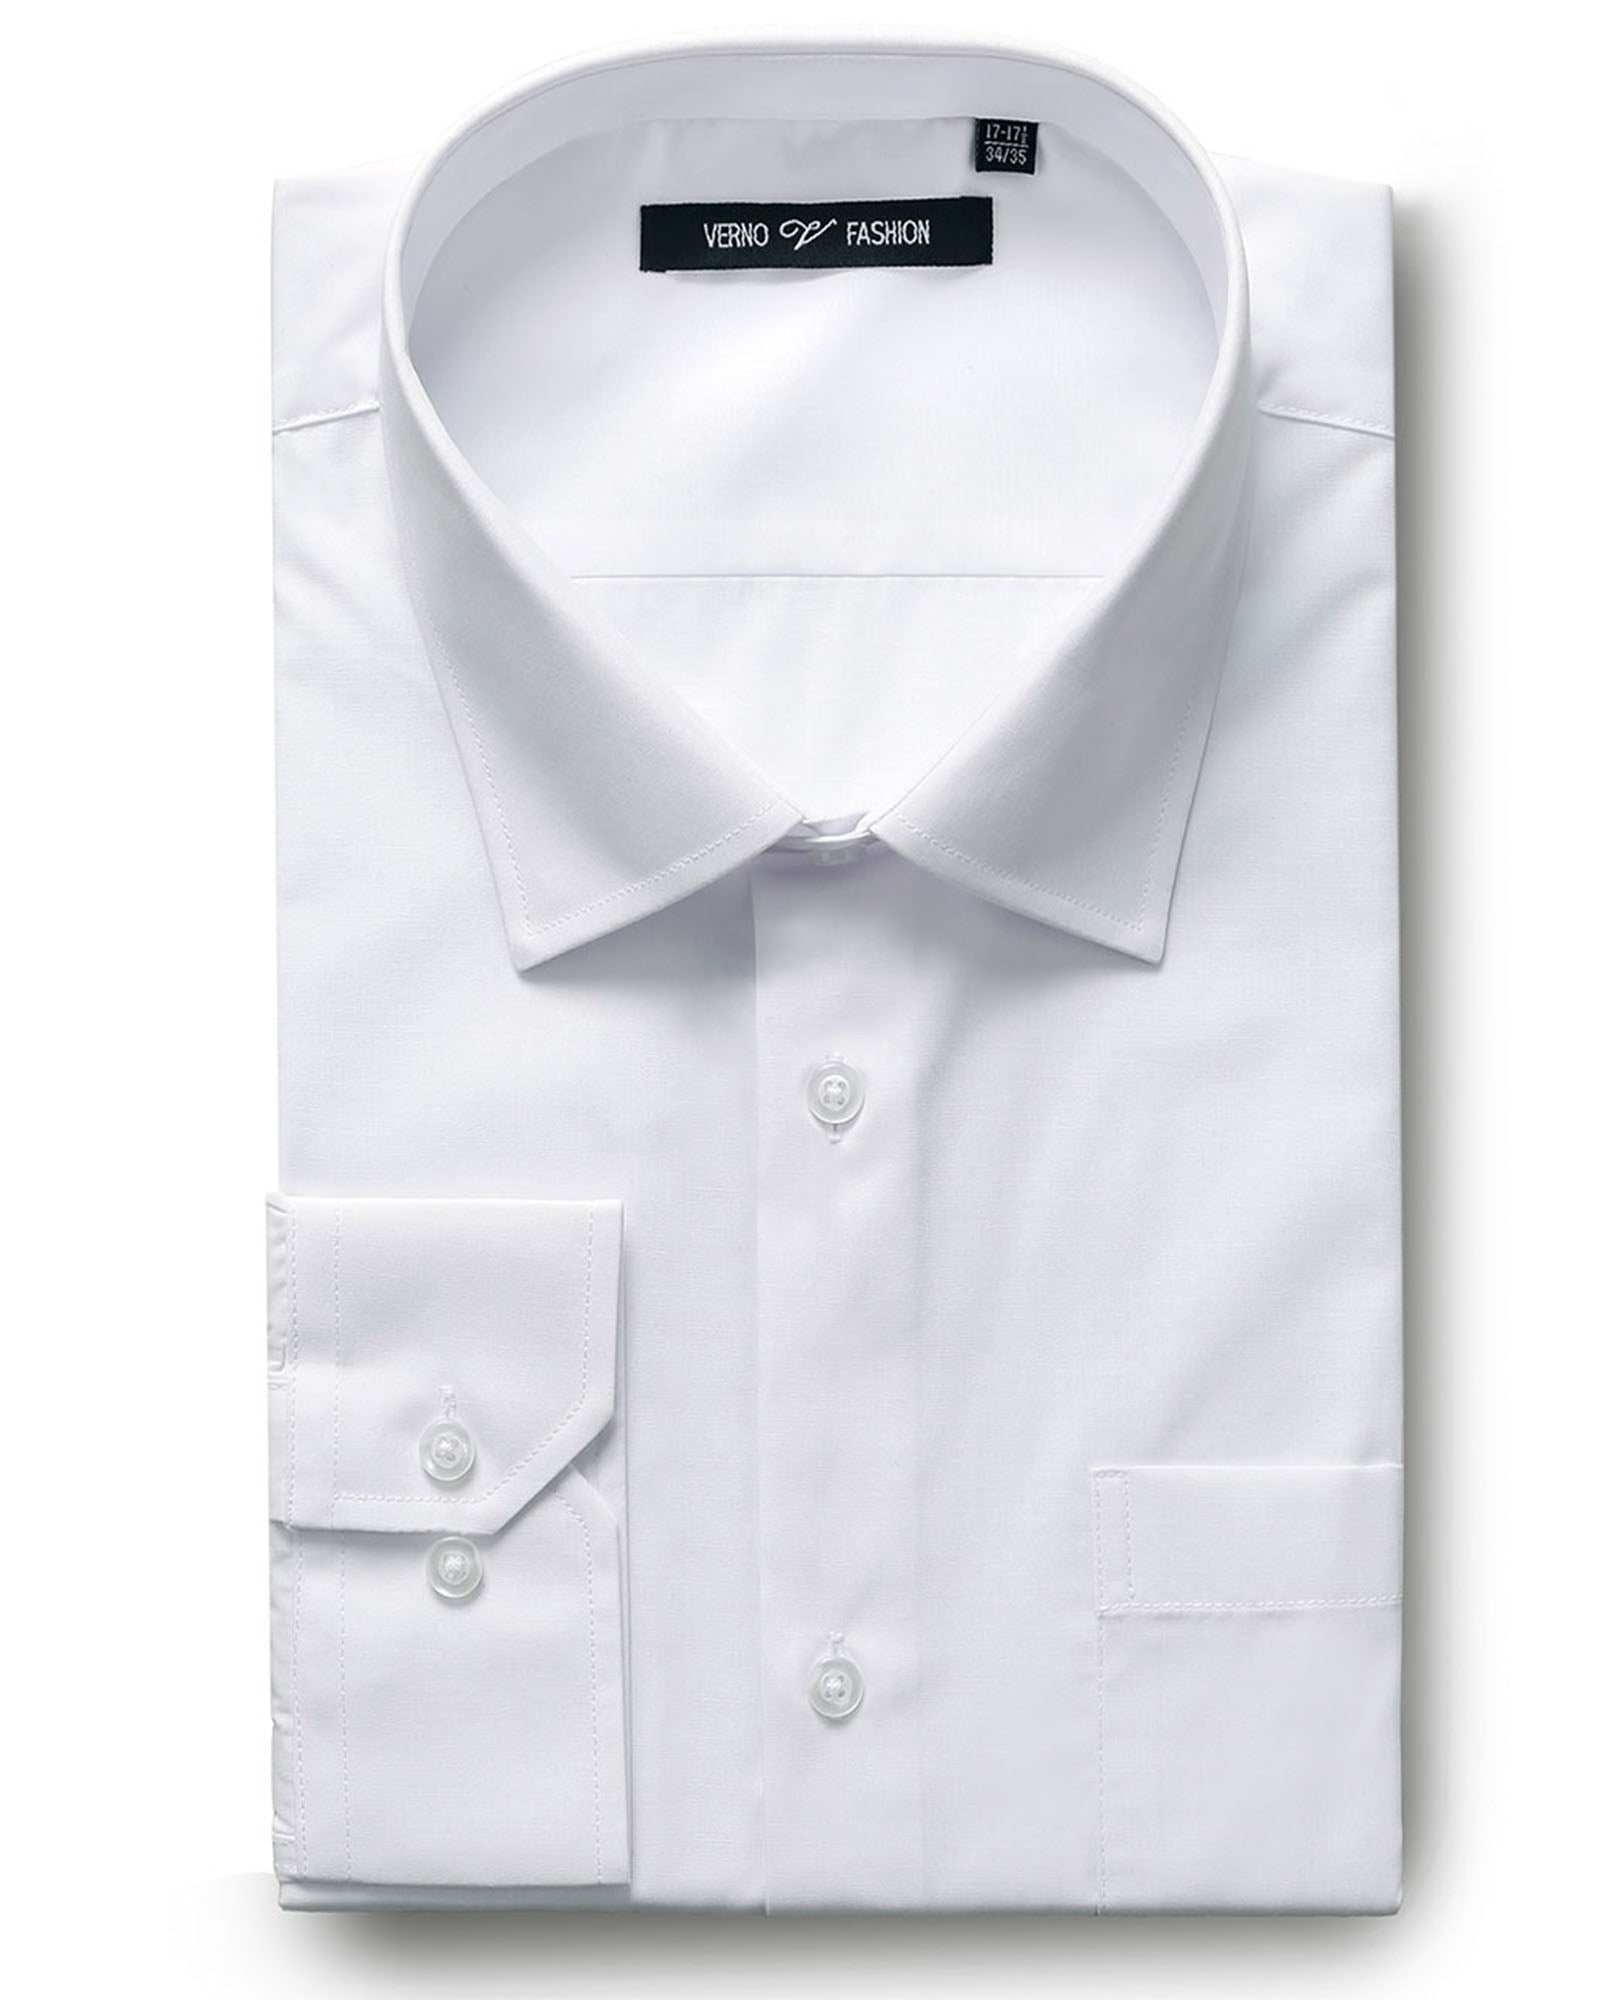 Verno Fashion Dress Shirt Polyester Cotton Blend in White - Rainwater's Men's Clothing and Tuxedo Rental